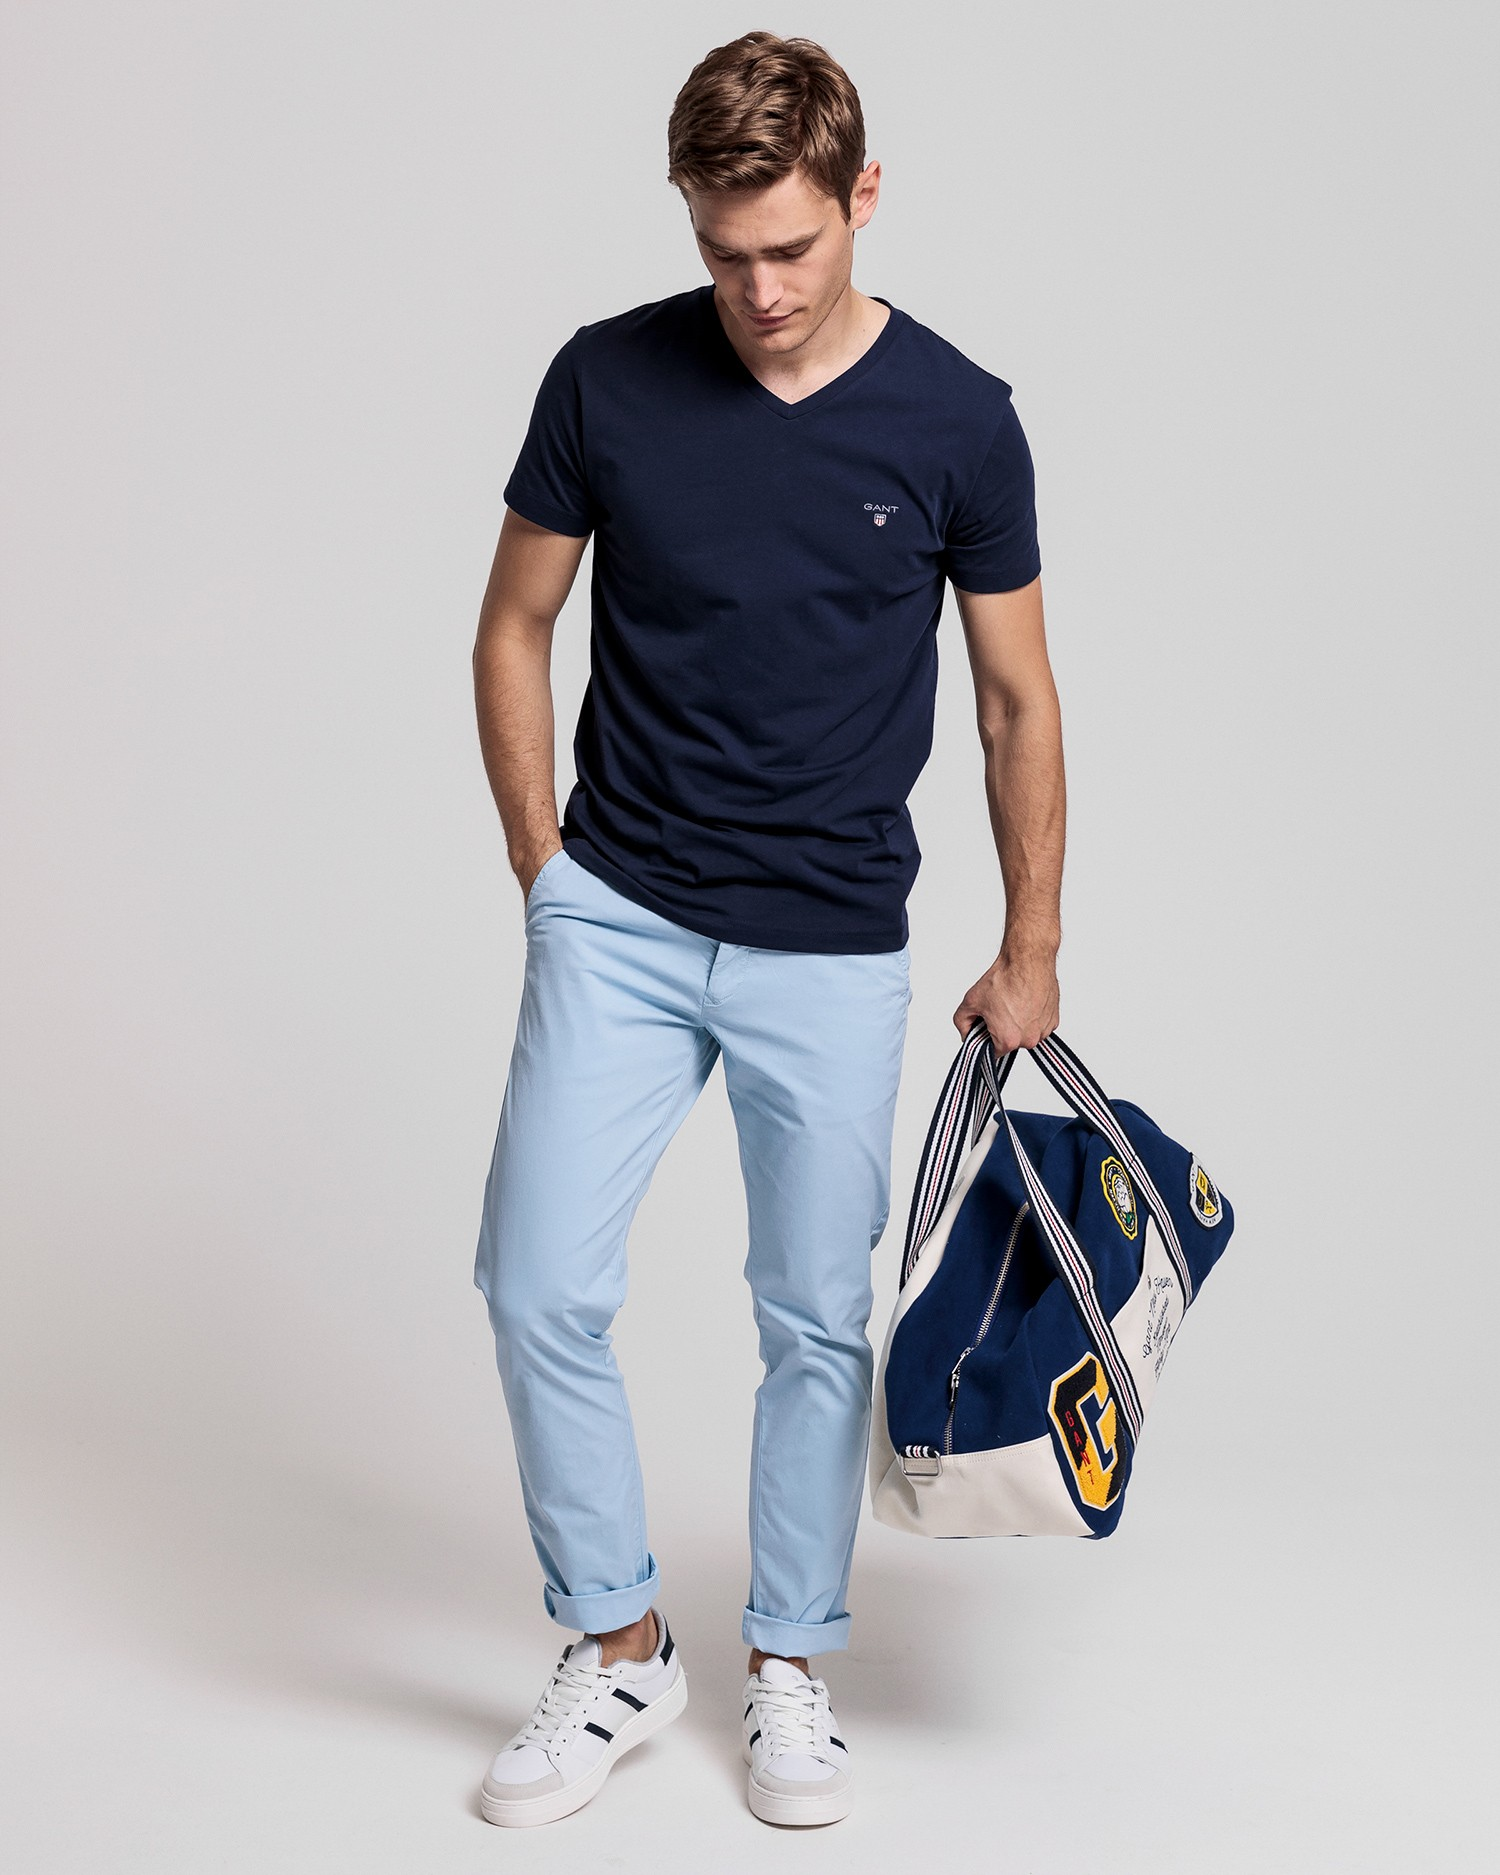 GANT Men's Slim Fit T-Shirt - 234104